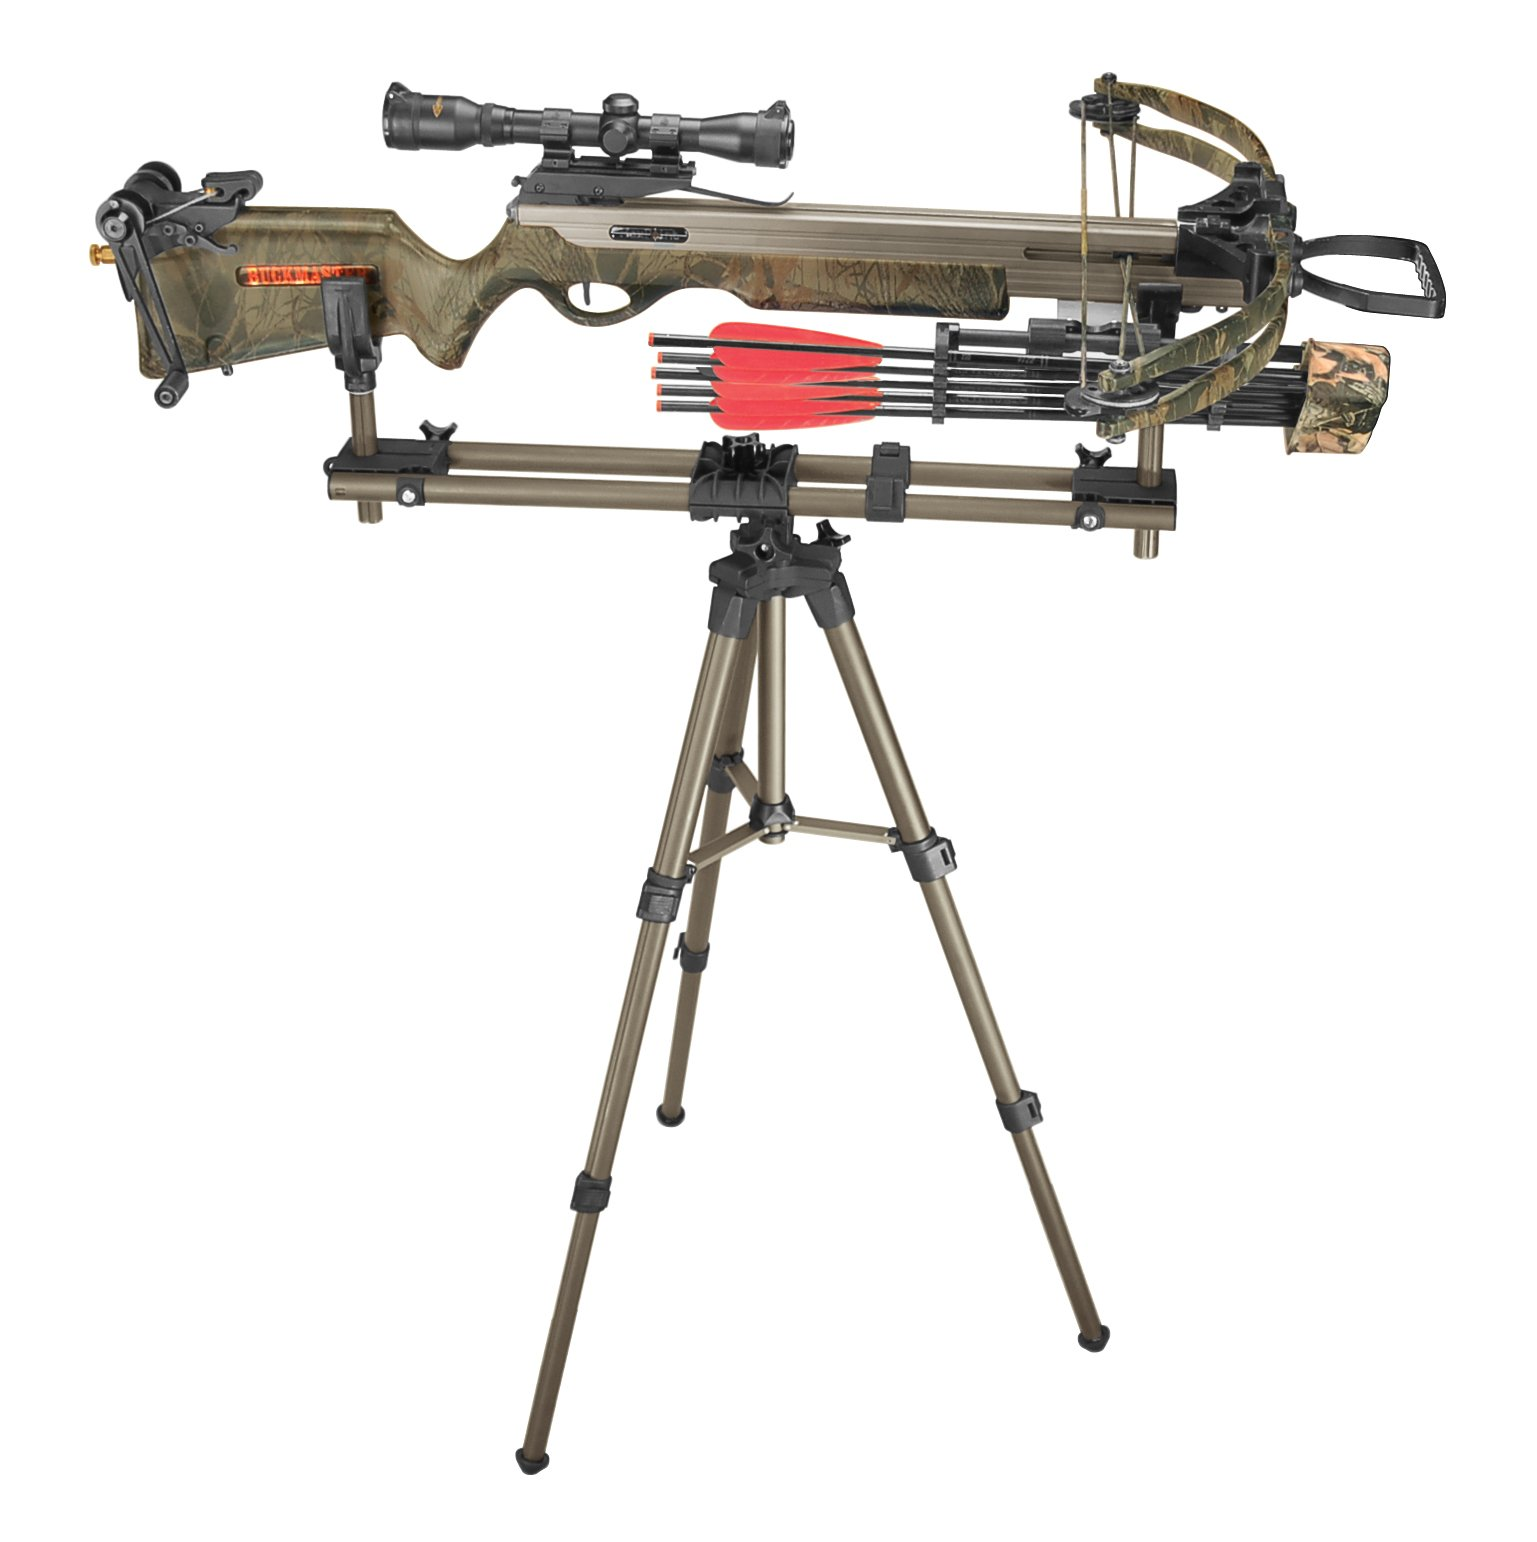 Caldwell DeadShot FieldPod Adjustable Ambidextrous Rifle Shooting Rest for Outdoor Range and Hunting by Caldwell (Image #5)